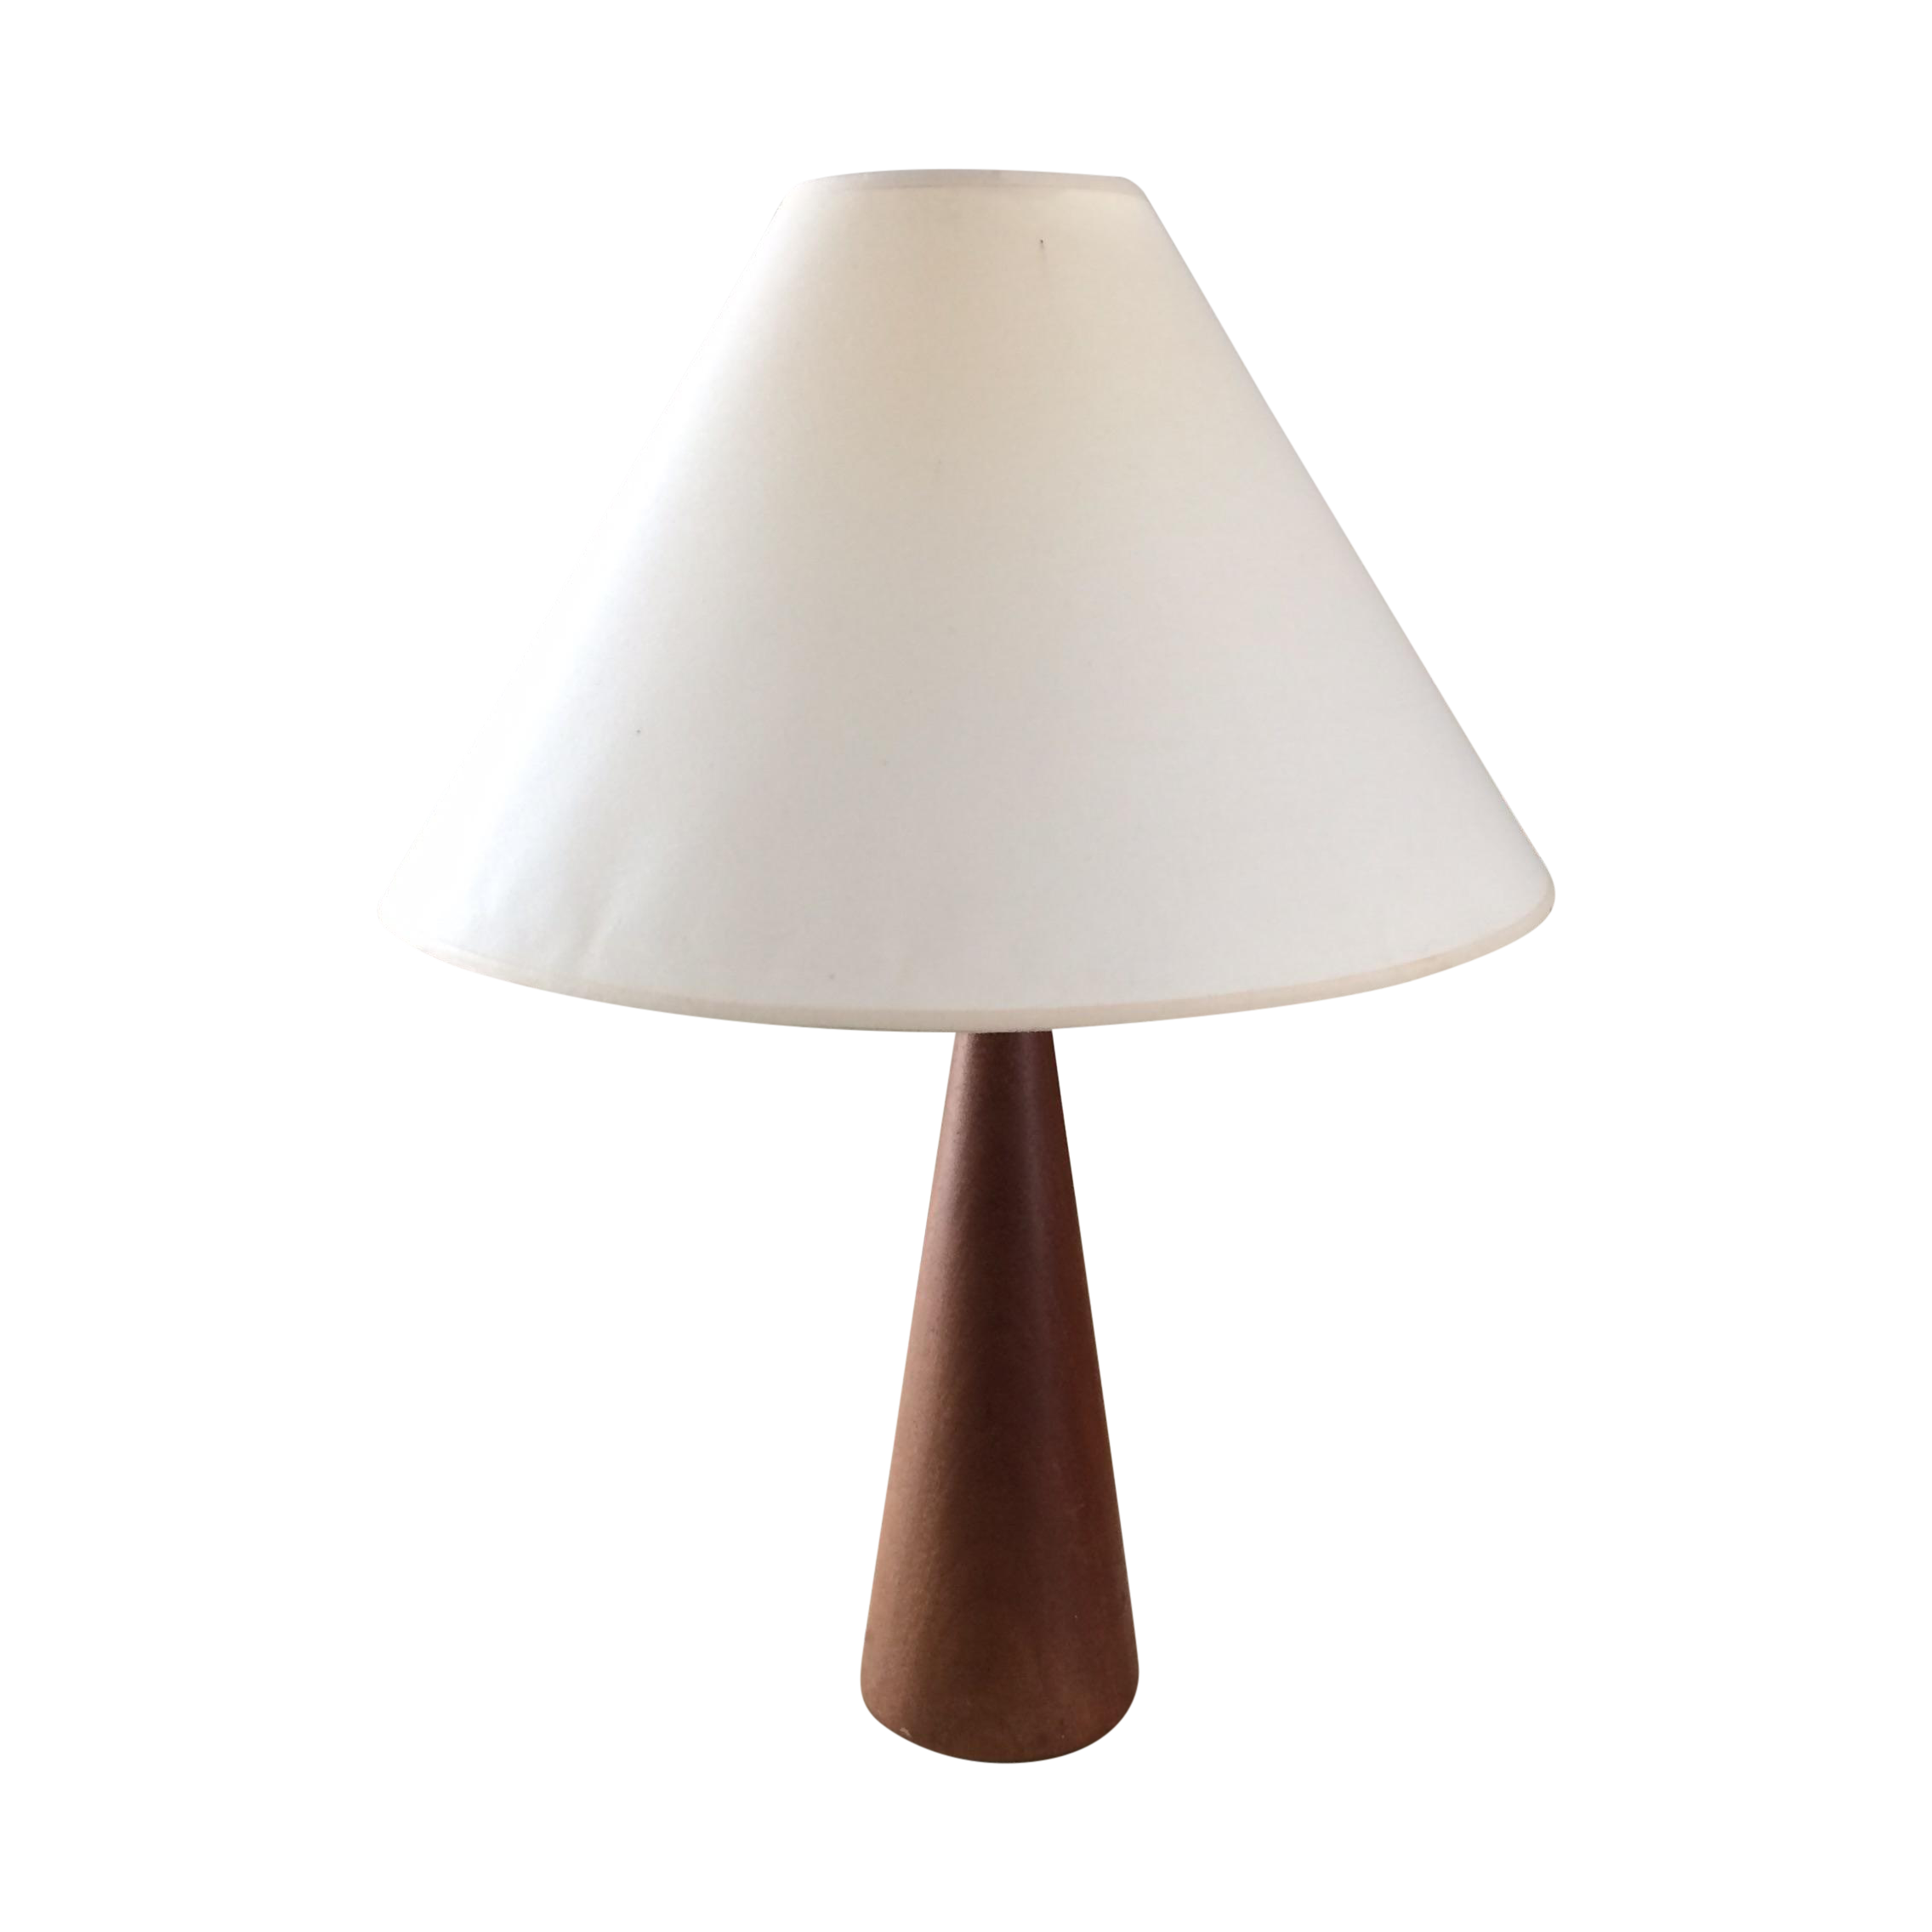 Vintage Danish Modern Teak Table Lamp Chairish